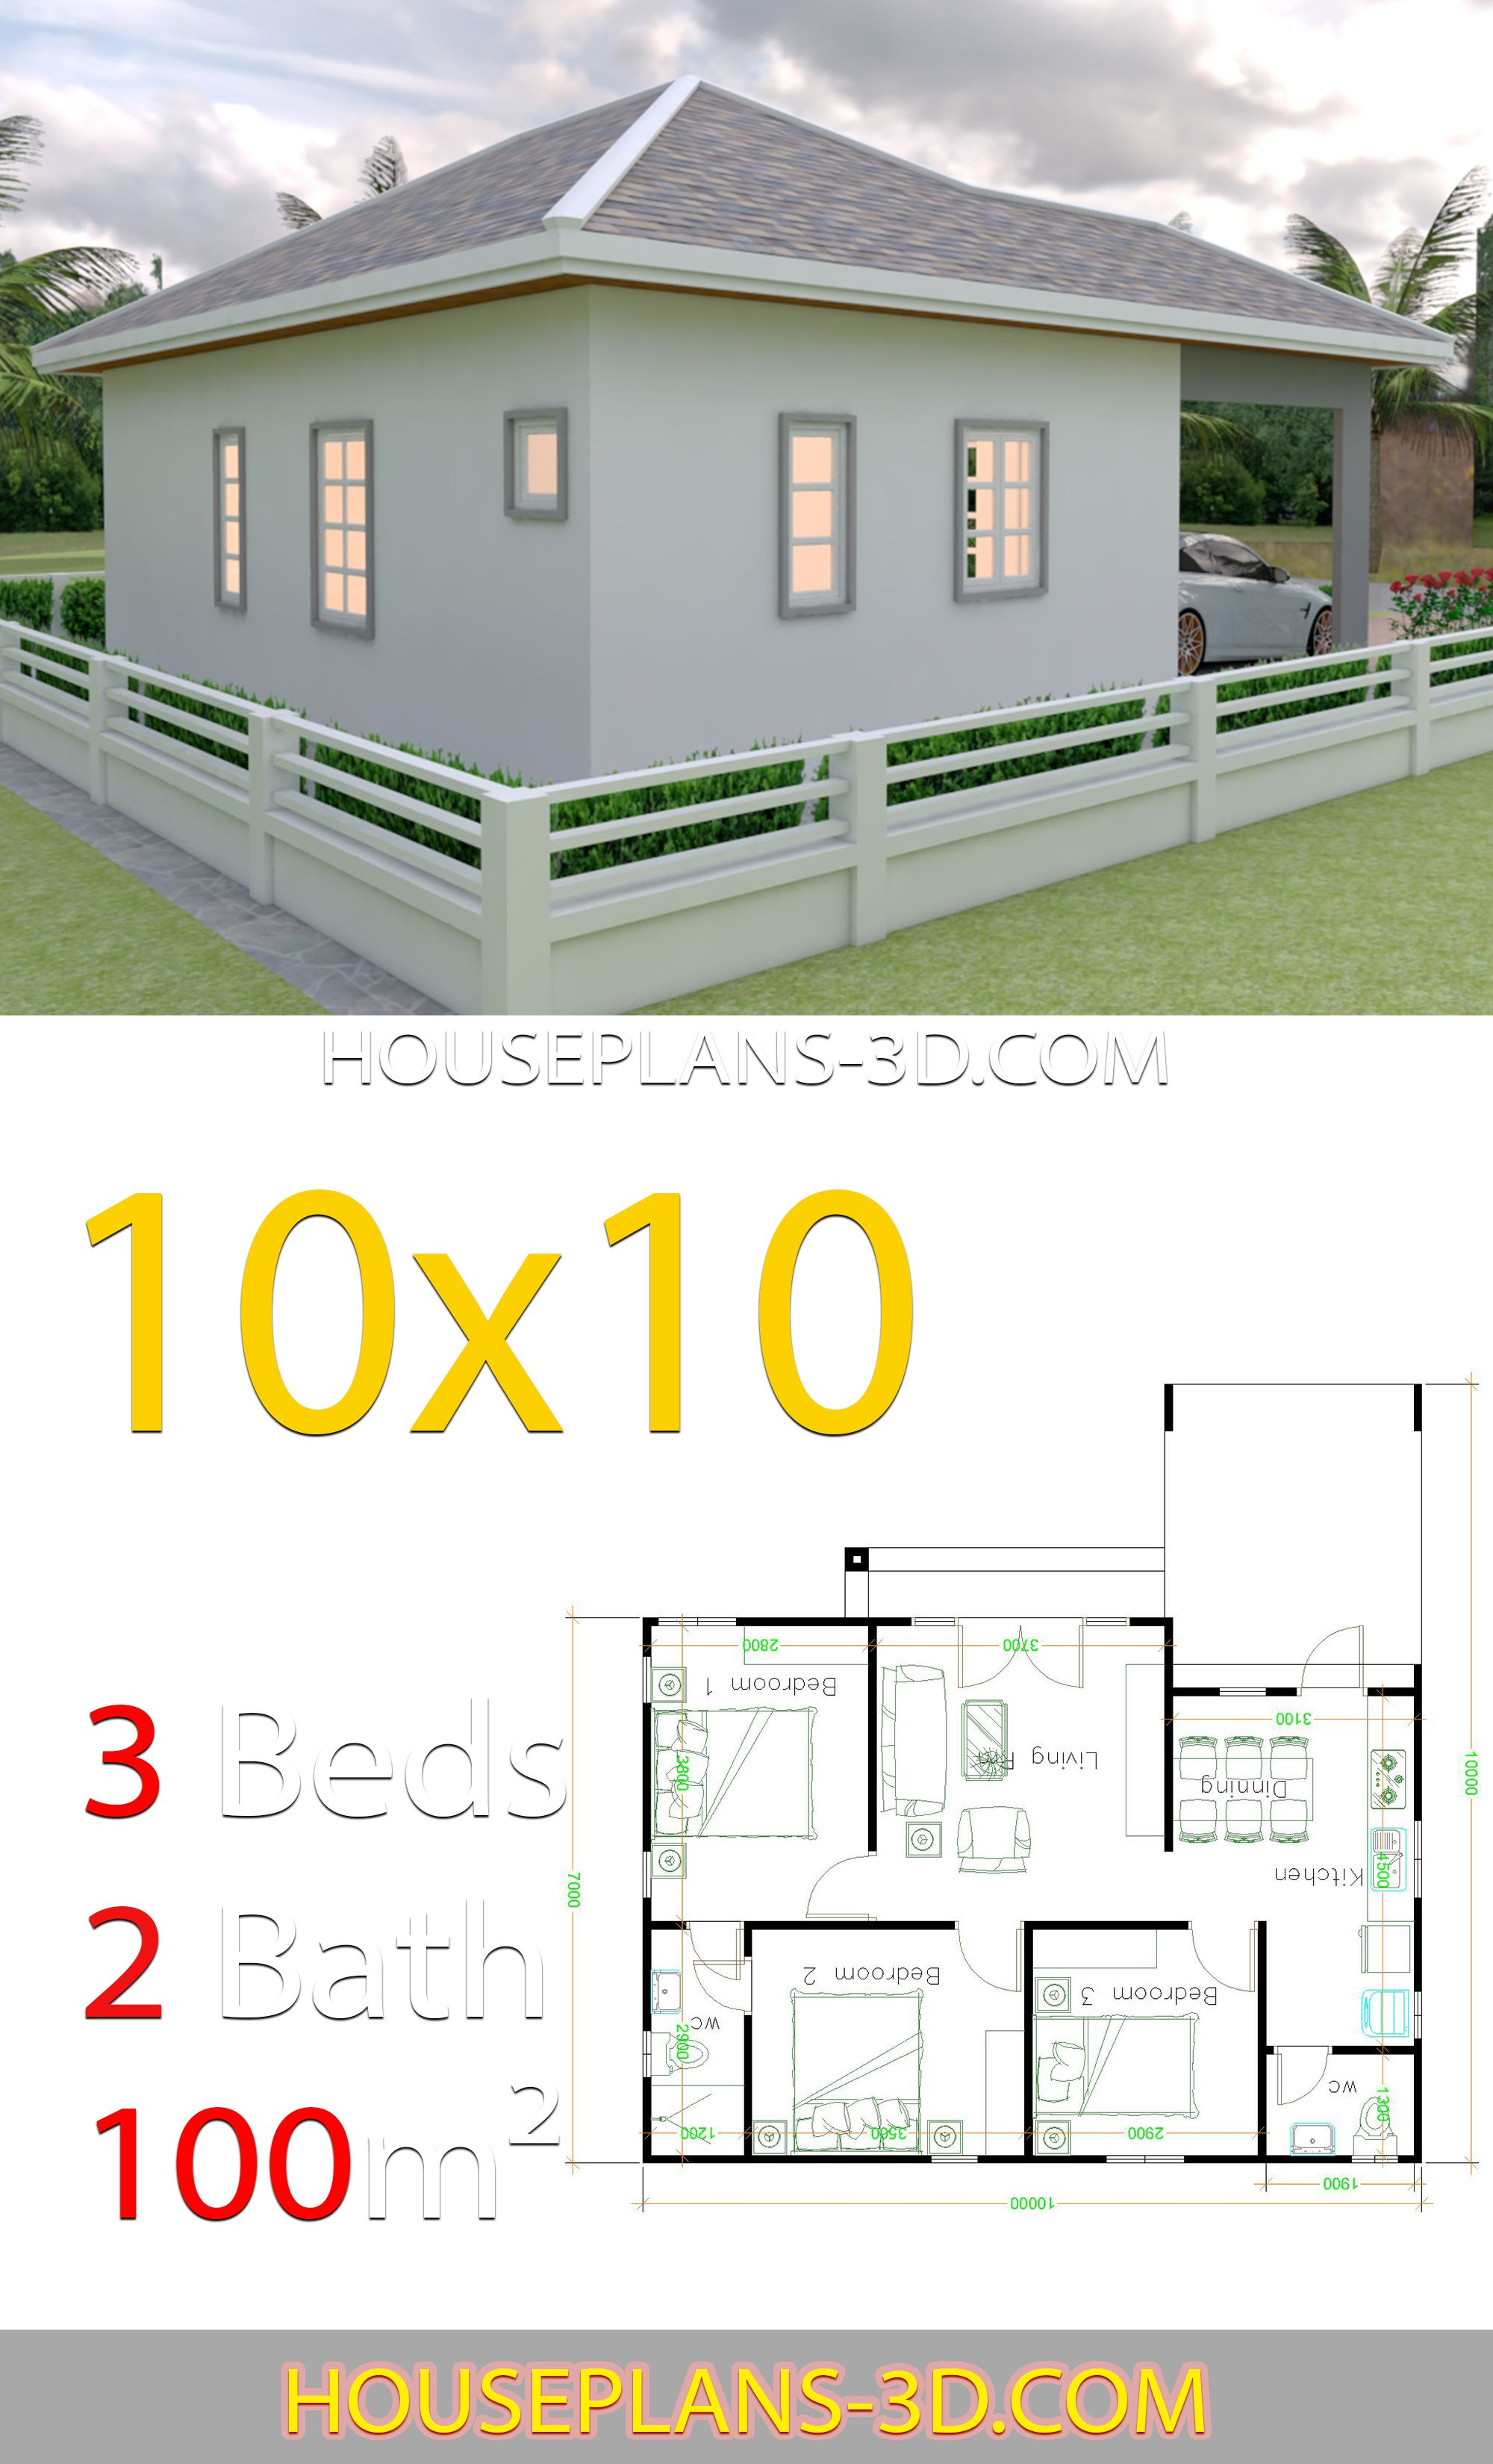 House Design 10x10 With 3 Bedrooms Hip Roof House Plans Small House Design Plans House Layout Plans